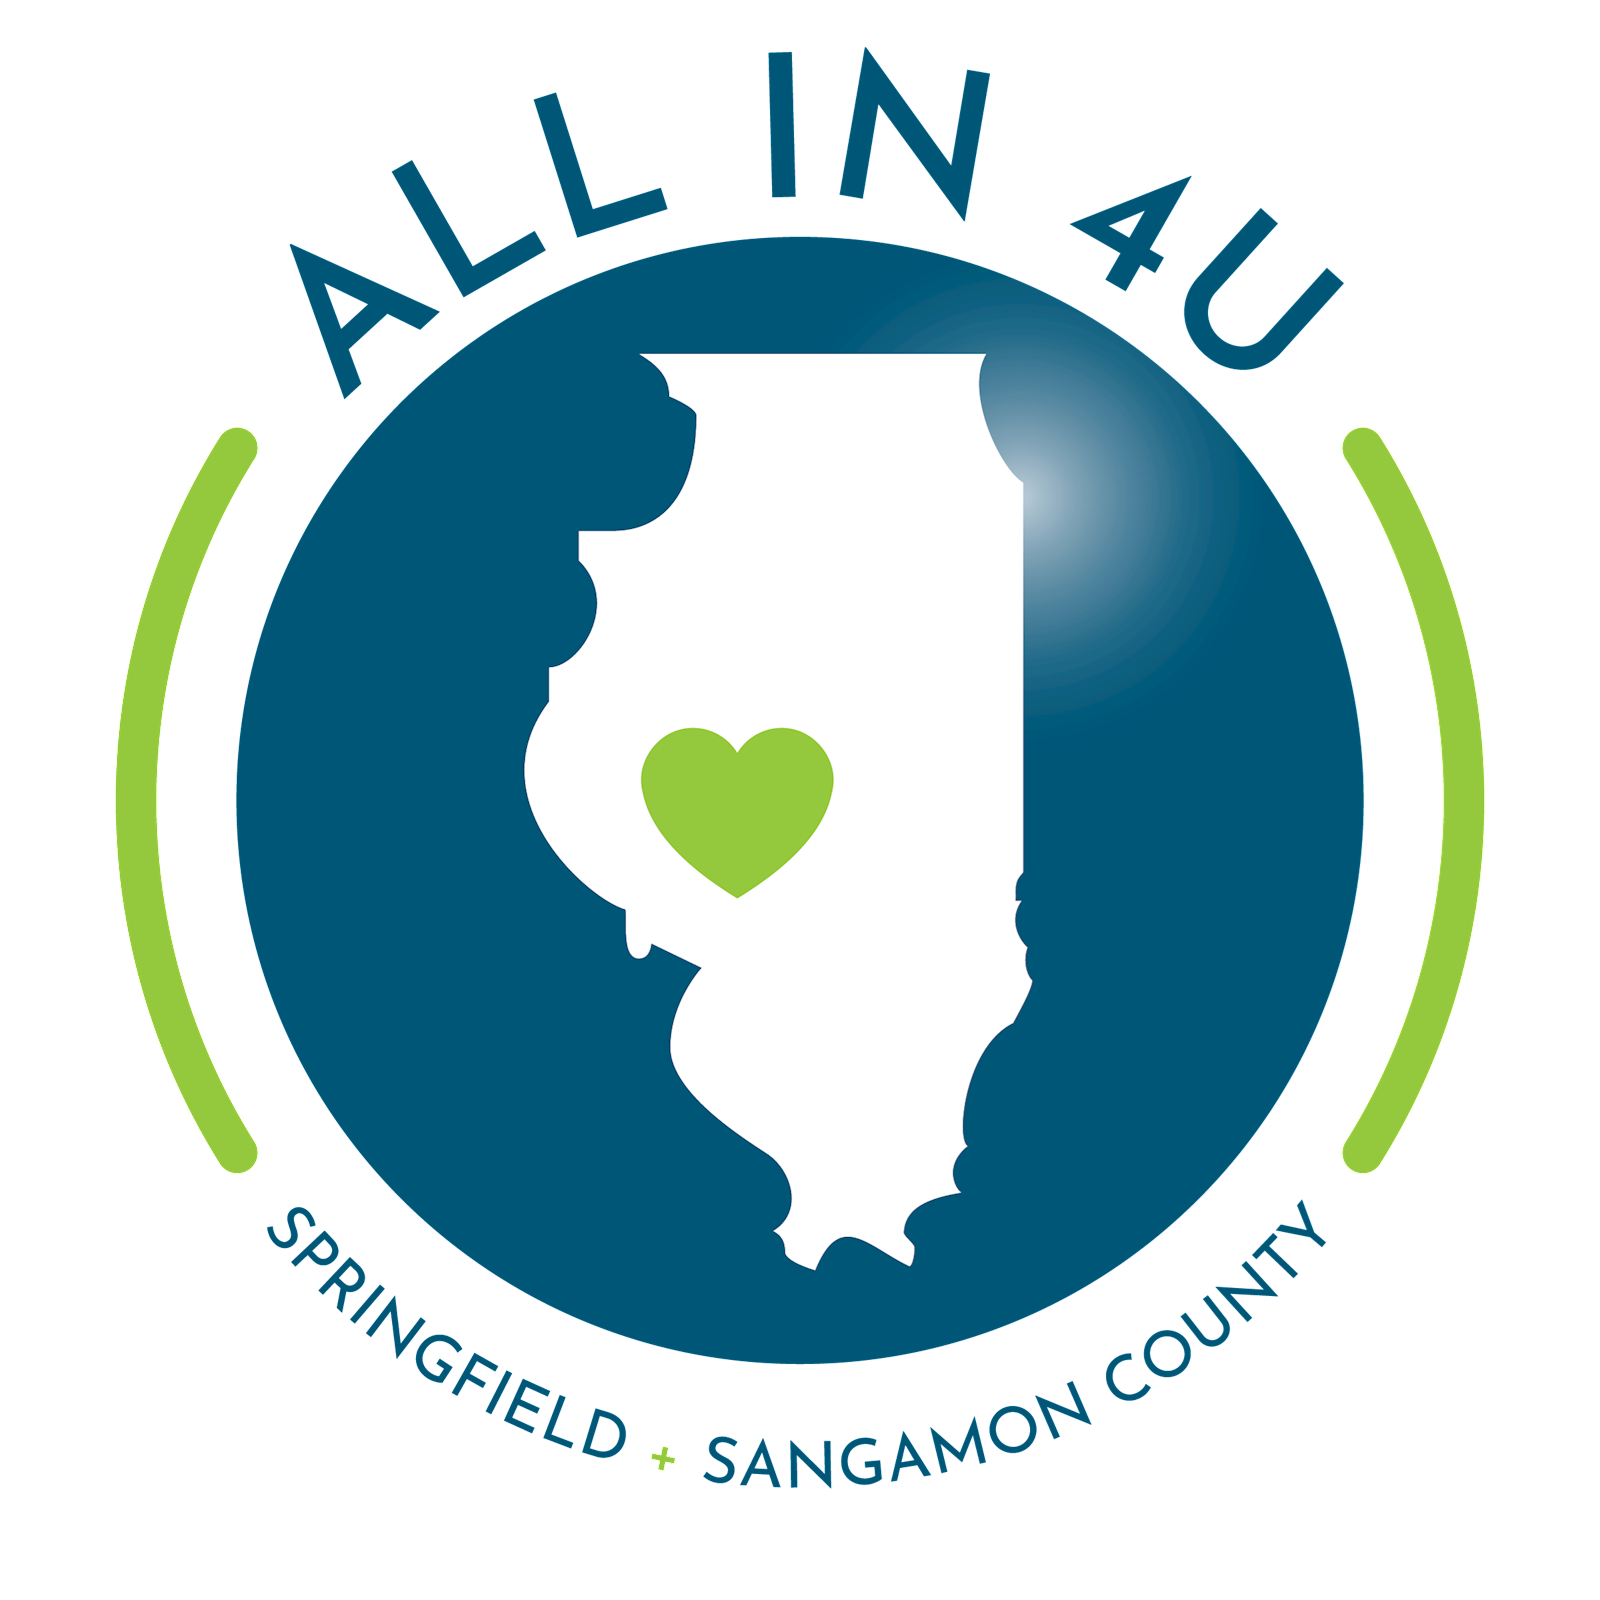 Our organization took the ALL IN 4U Pledge.